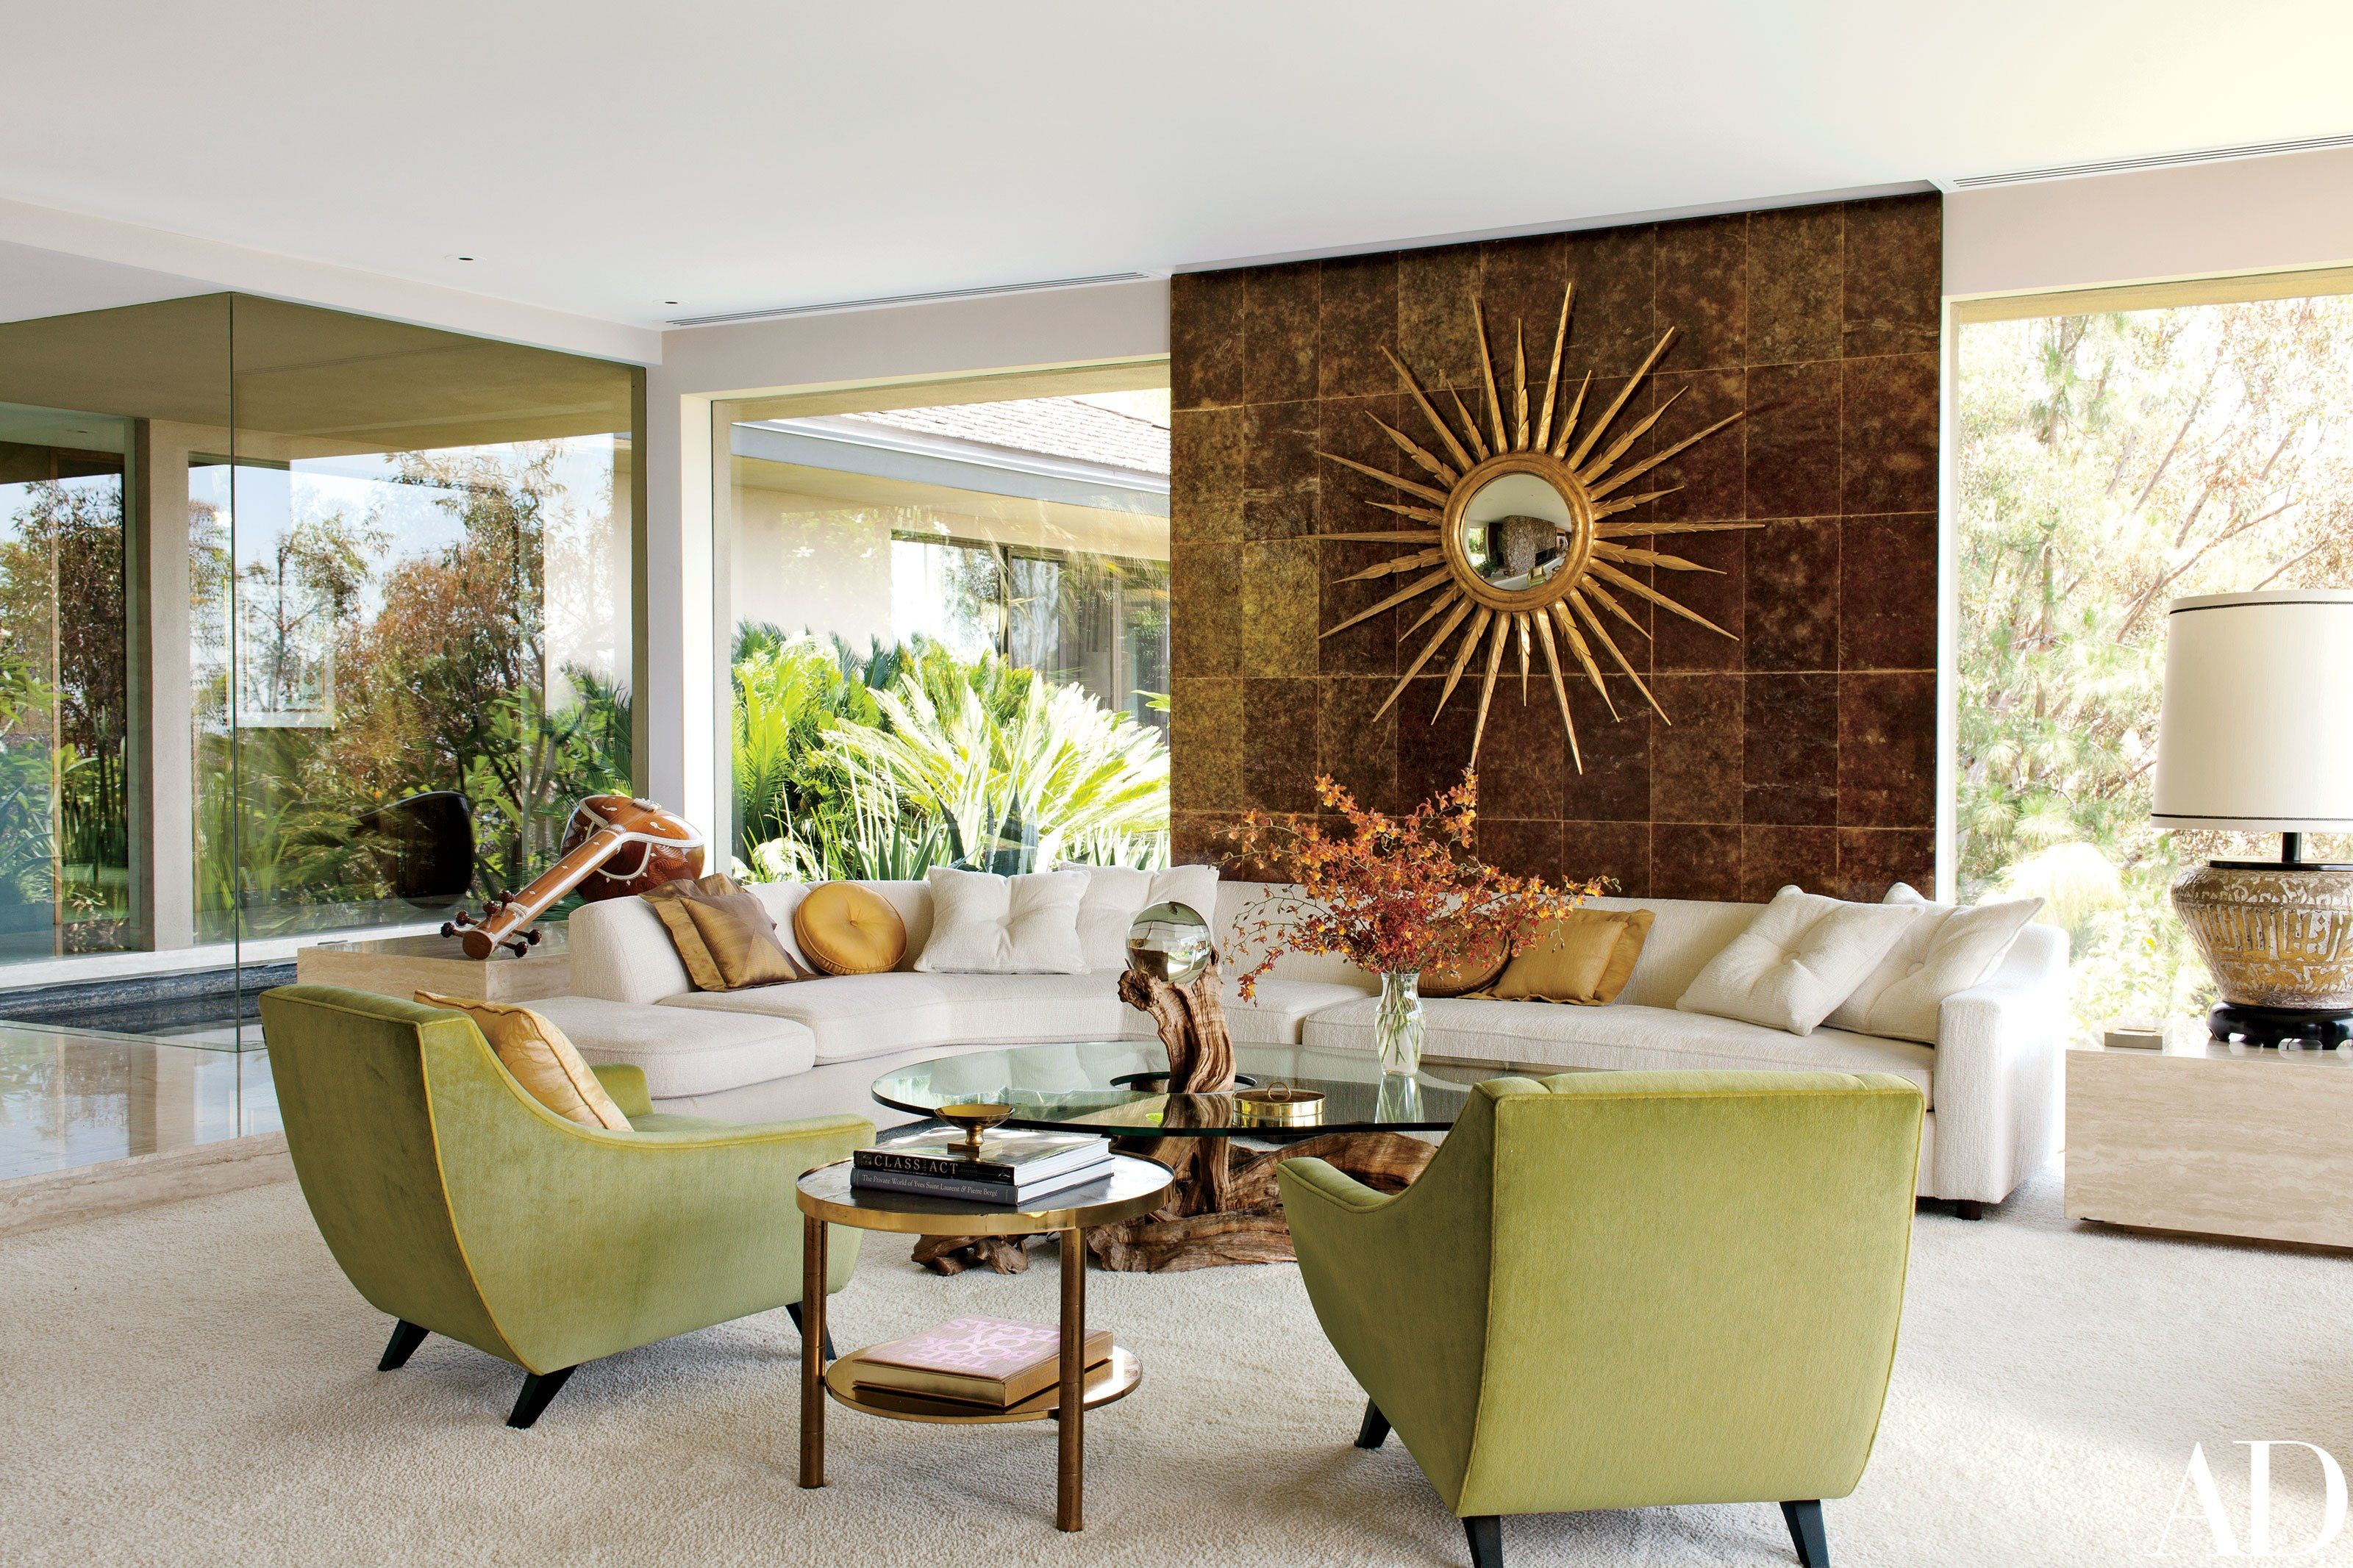 Fashion Photographer Steven Meisel's Midcentury Residence in Los Angeles